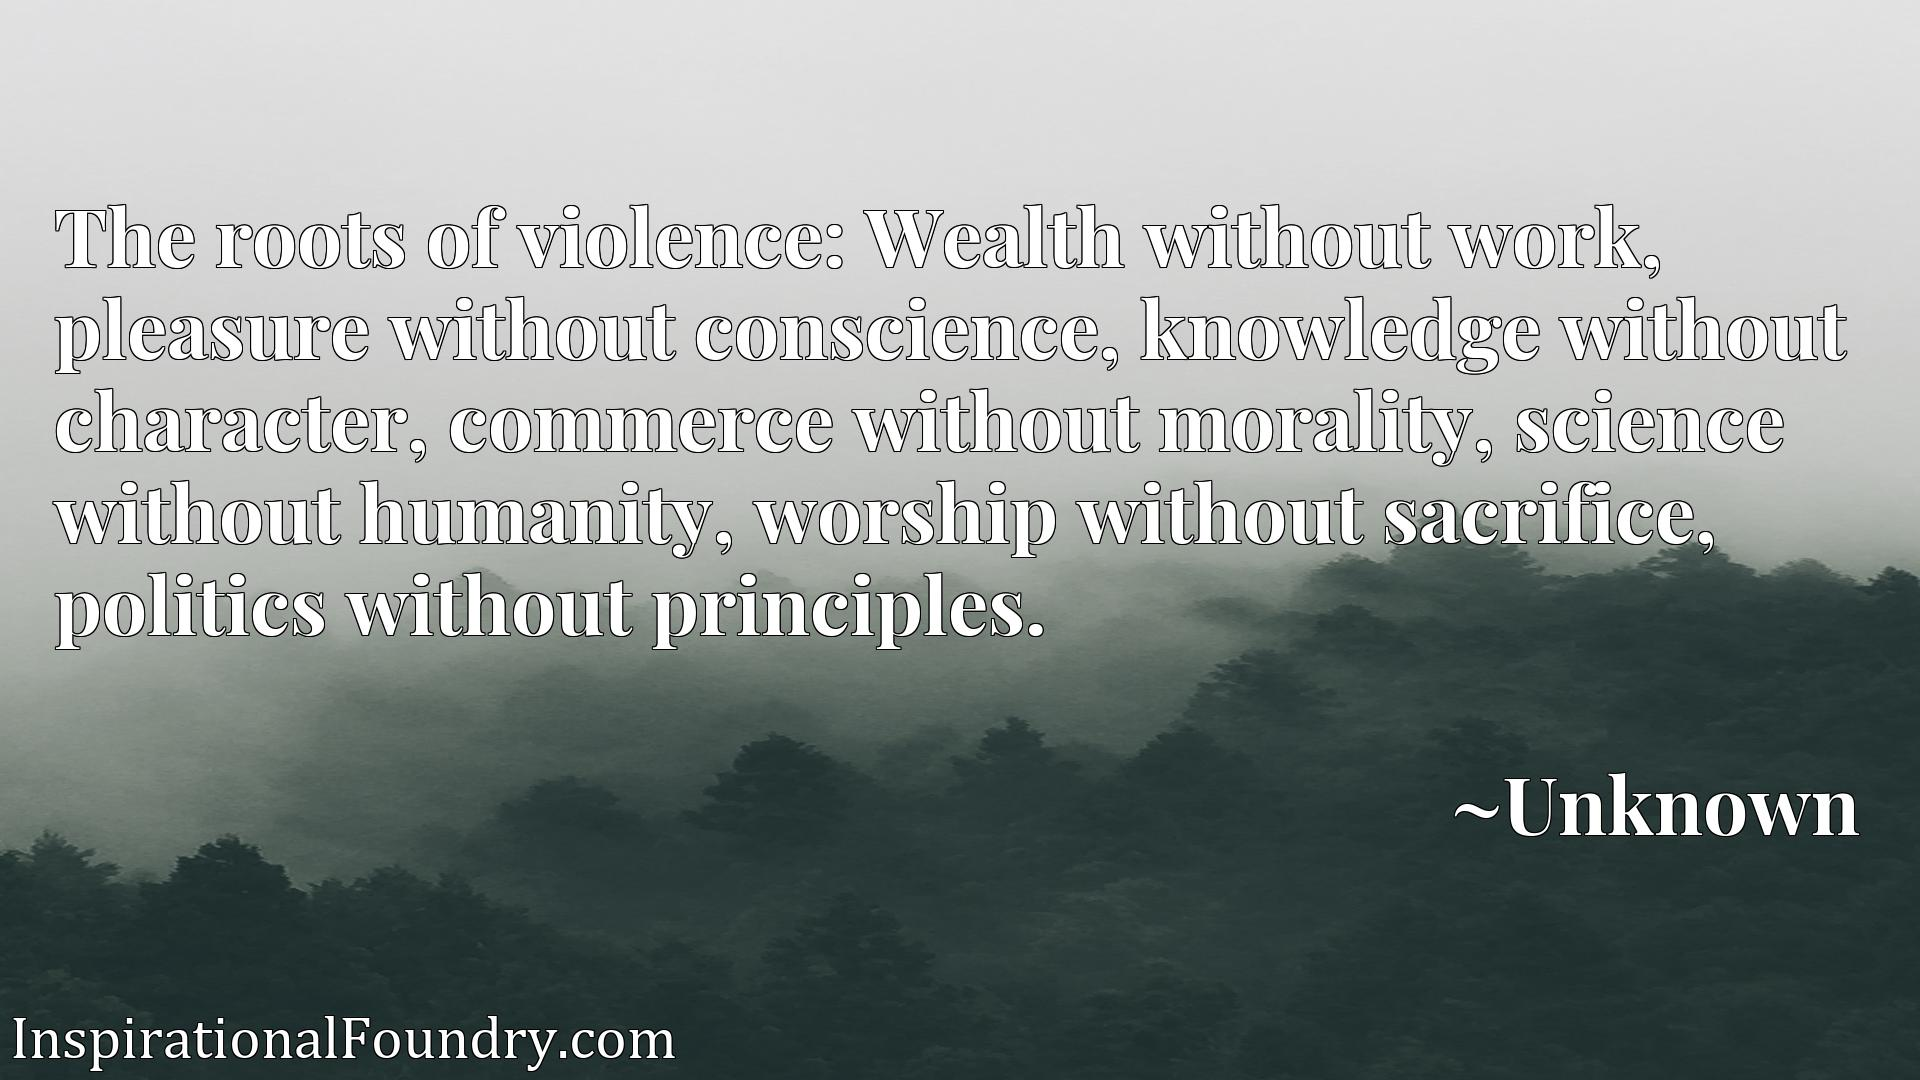 The roots of violence: Wealth without work, pleasure without conscience, knowledge without character, commerce without morality, science without humanity, worship without sacrifice, politics without principles.